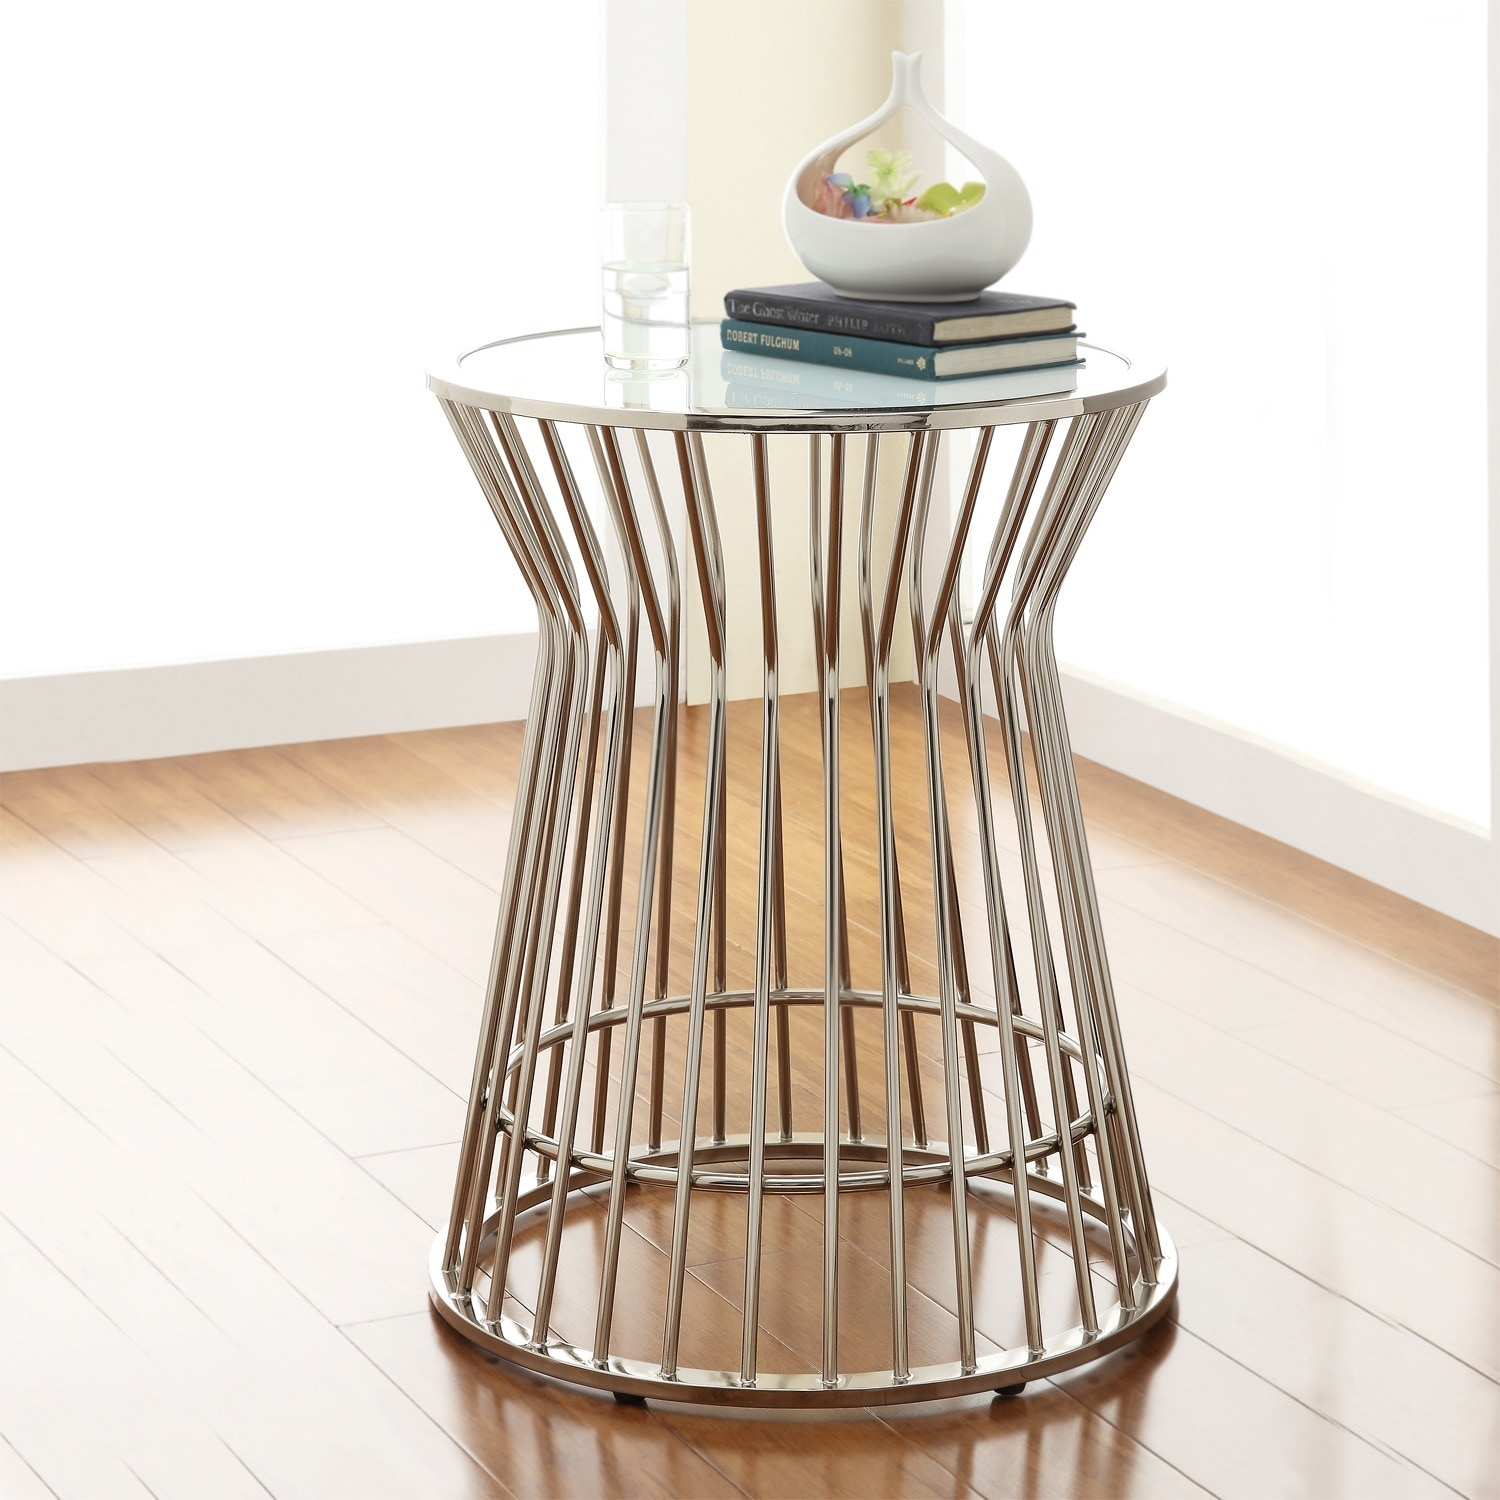 cyril contemporary glam metal frosted glass drum accent table by inspire qbold  free shipping today  overstockcom  . cyril contemporary glam metal frosted glass drum accent table by